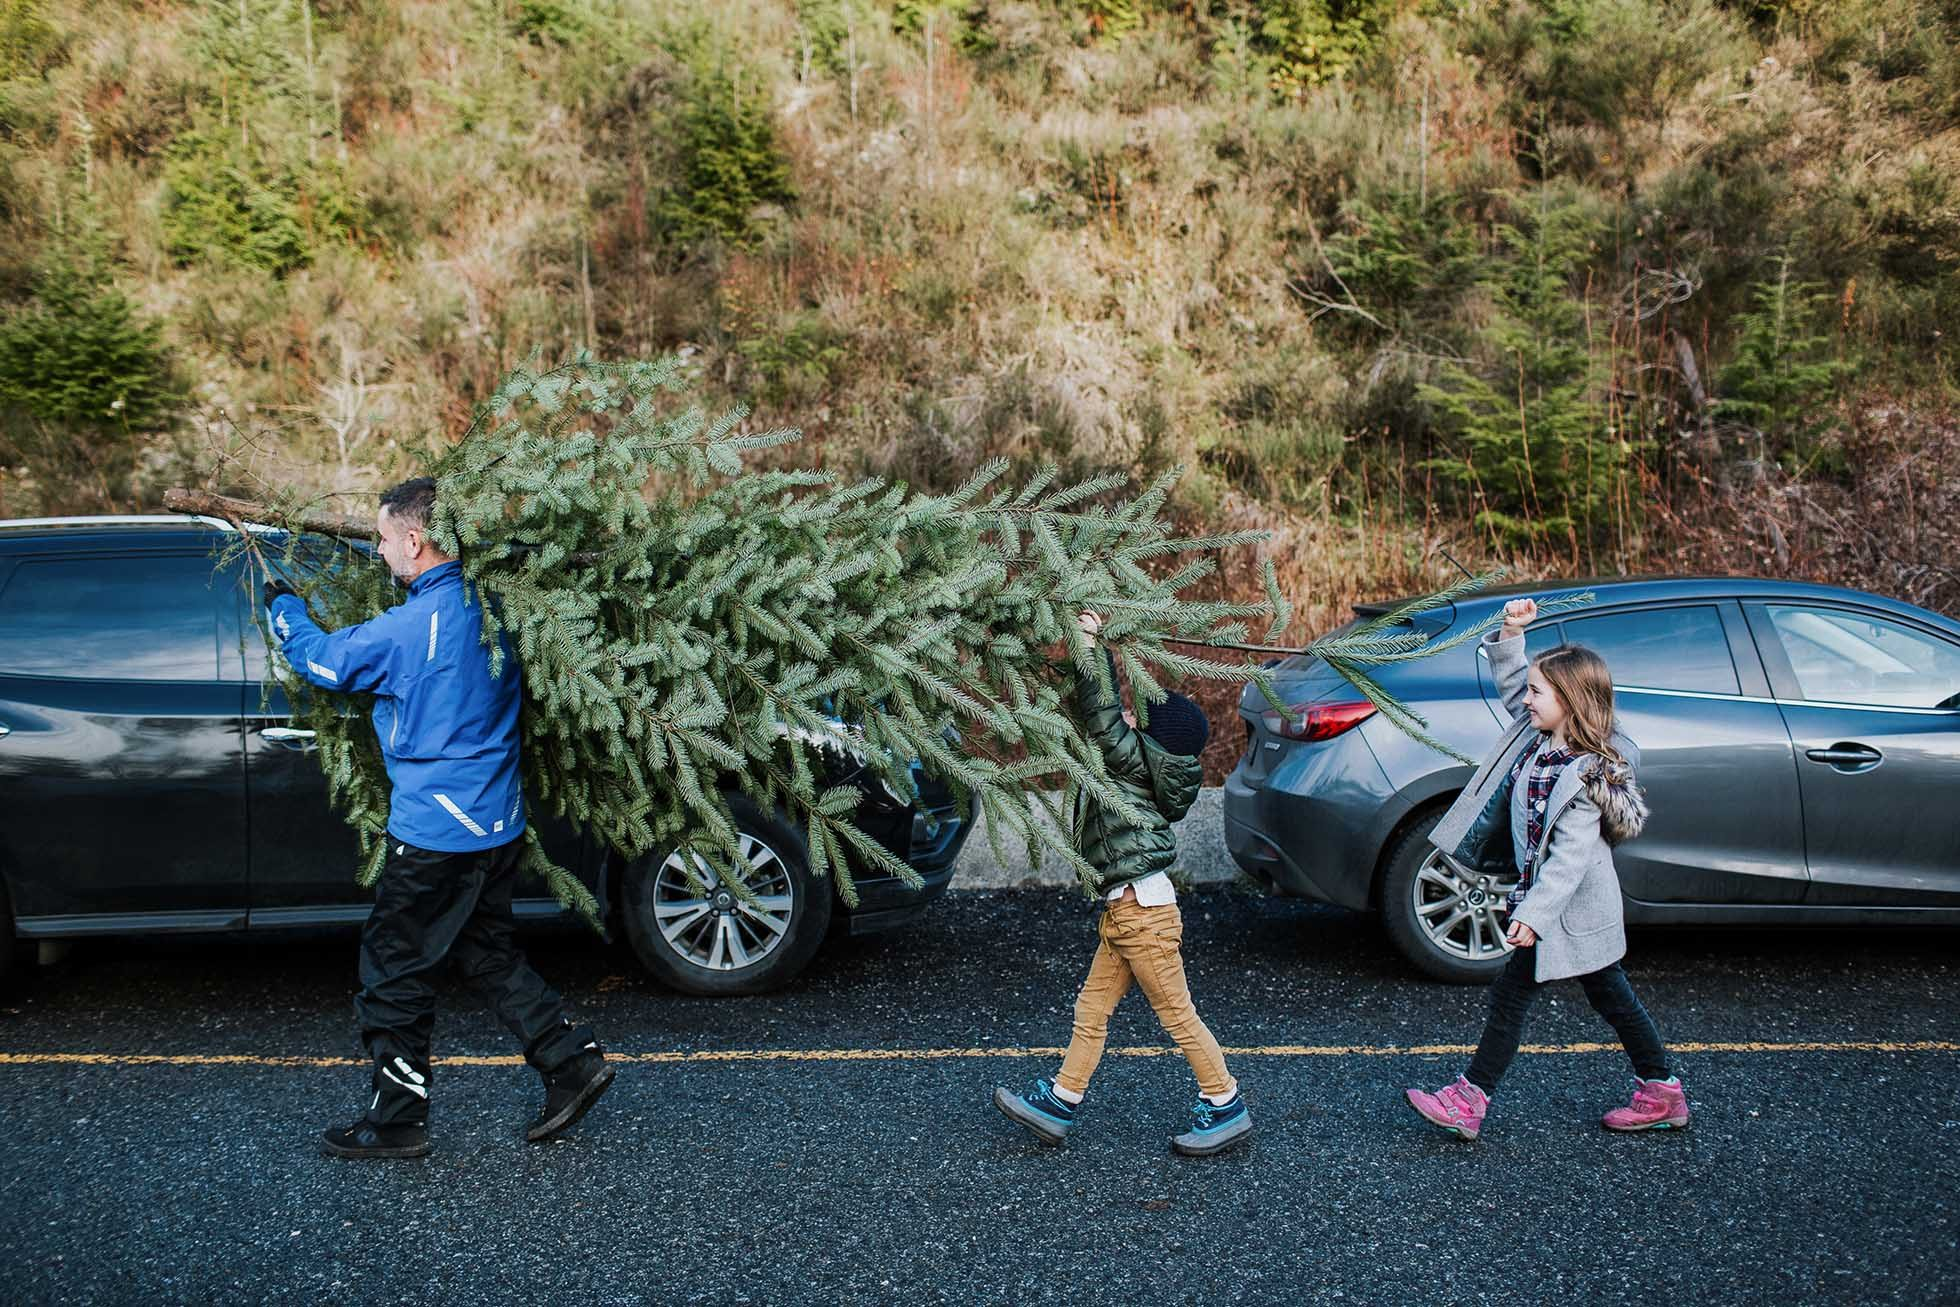 A family carries their fresh Christmas tree back to the car